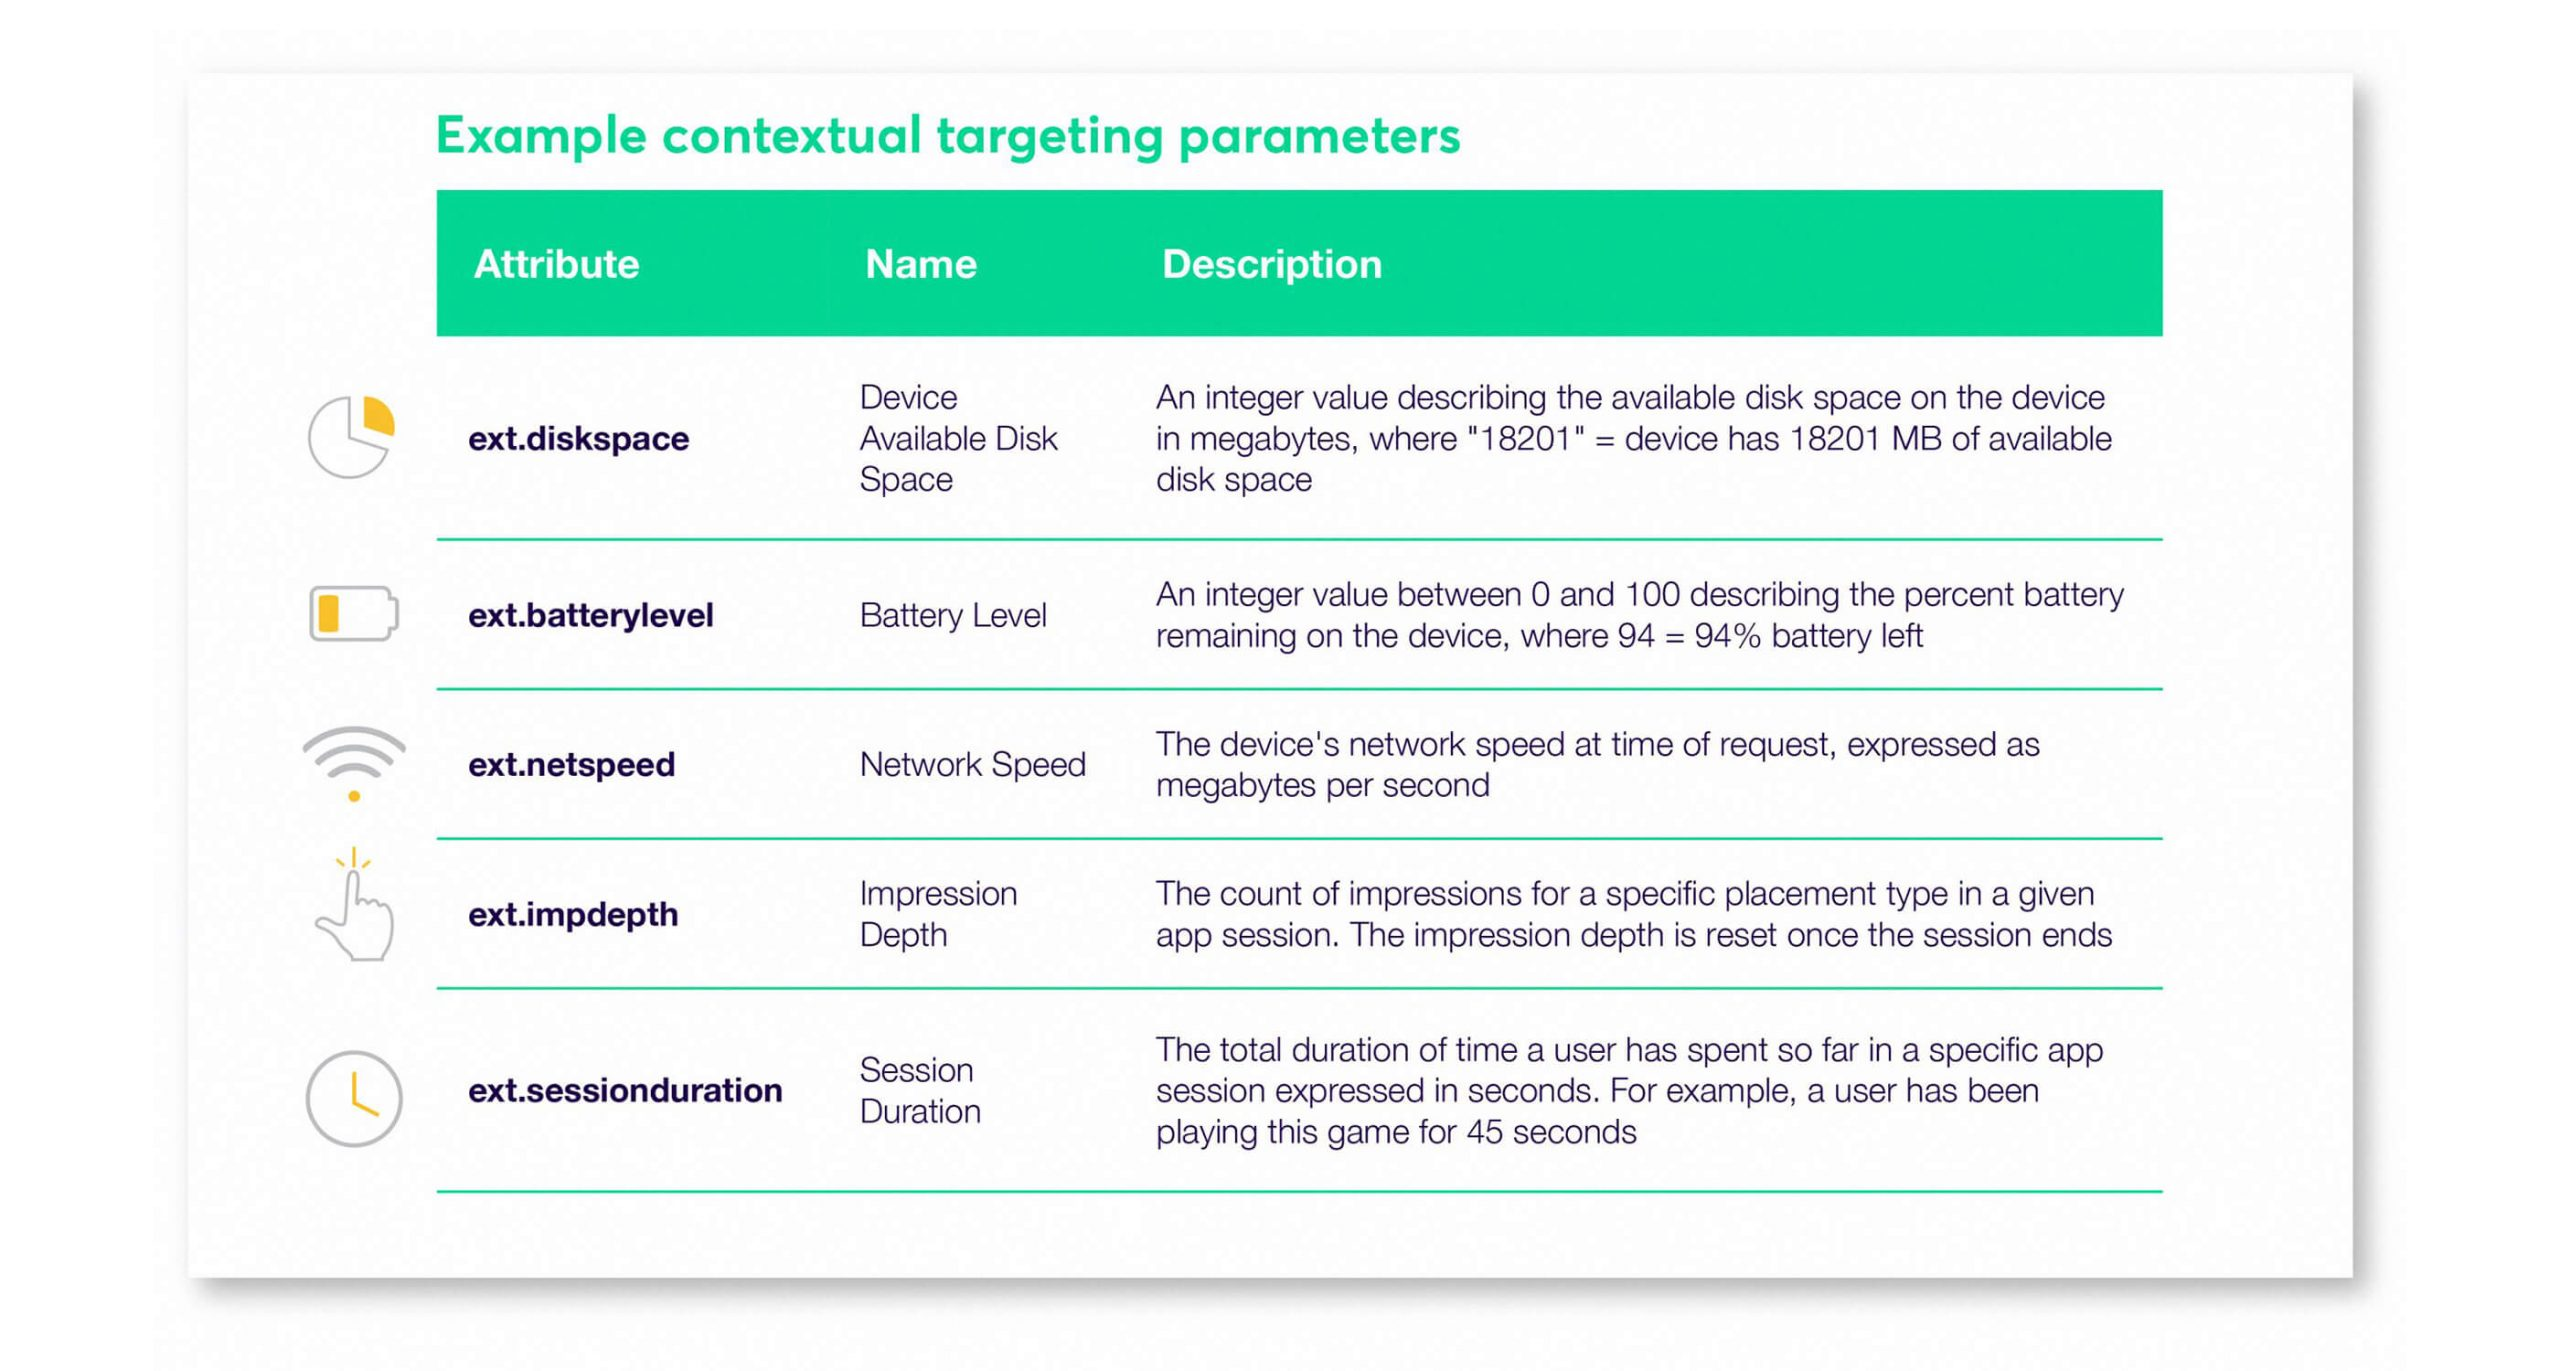 Infographic chart showcasing examples of contextual targeting parameters listing the attribute, name, and description